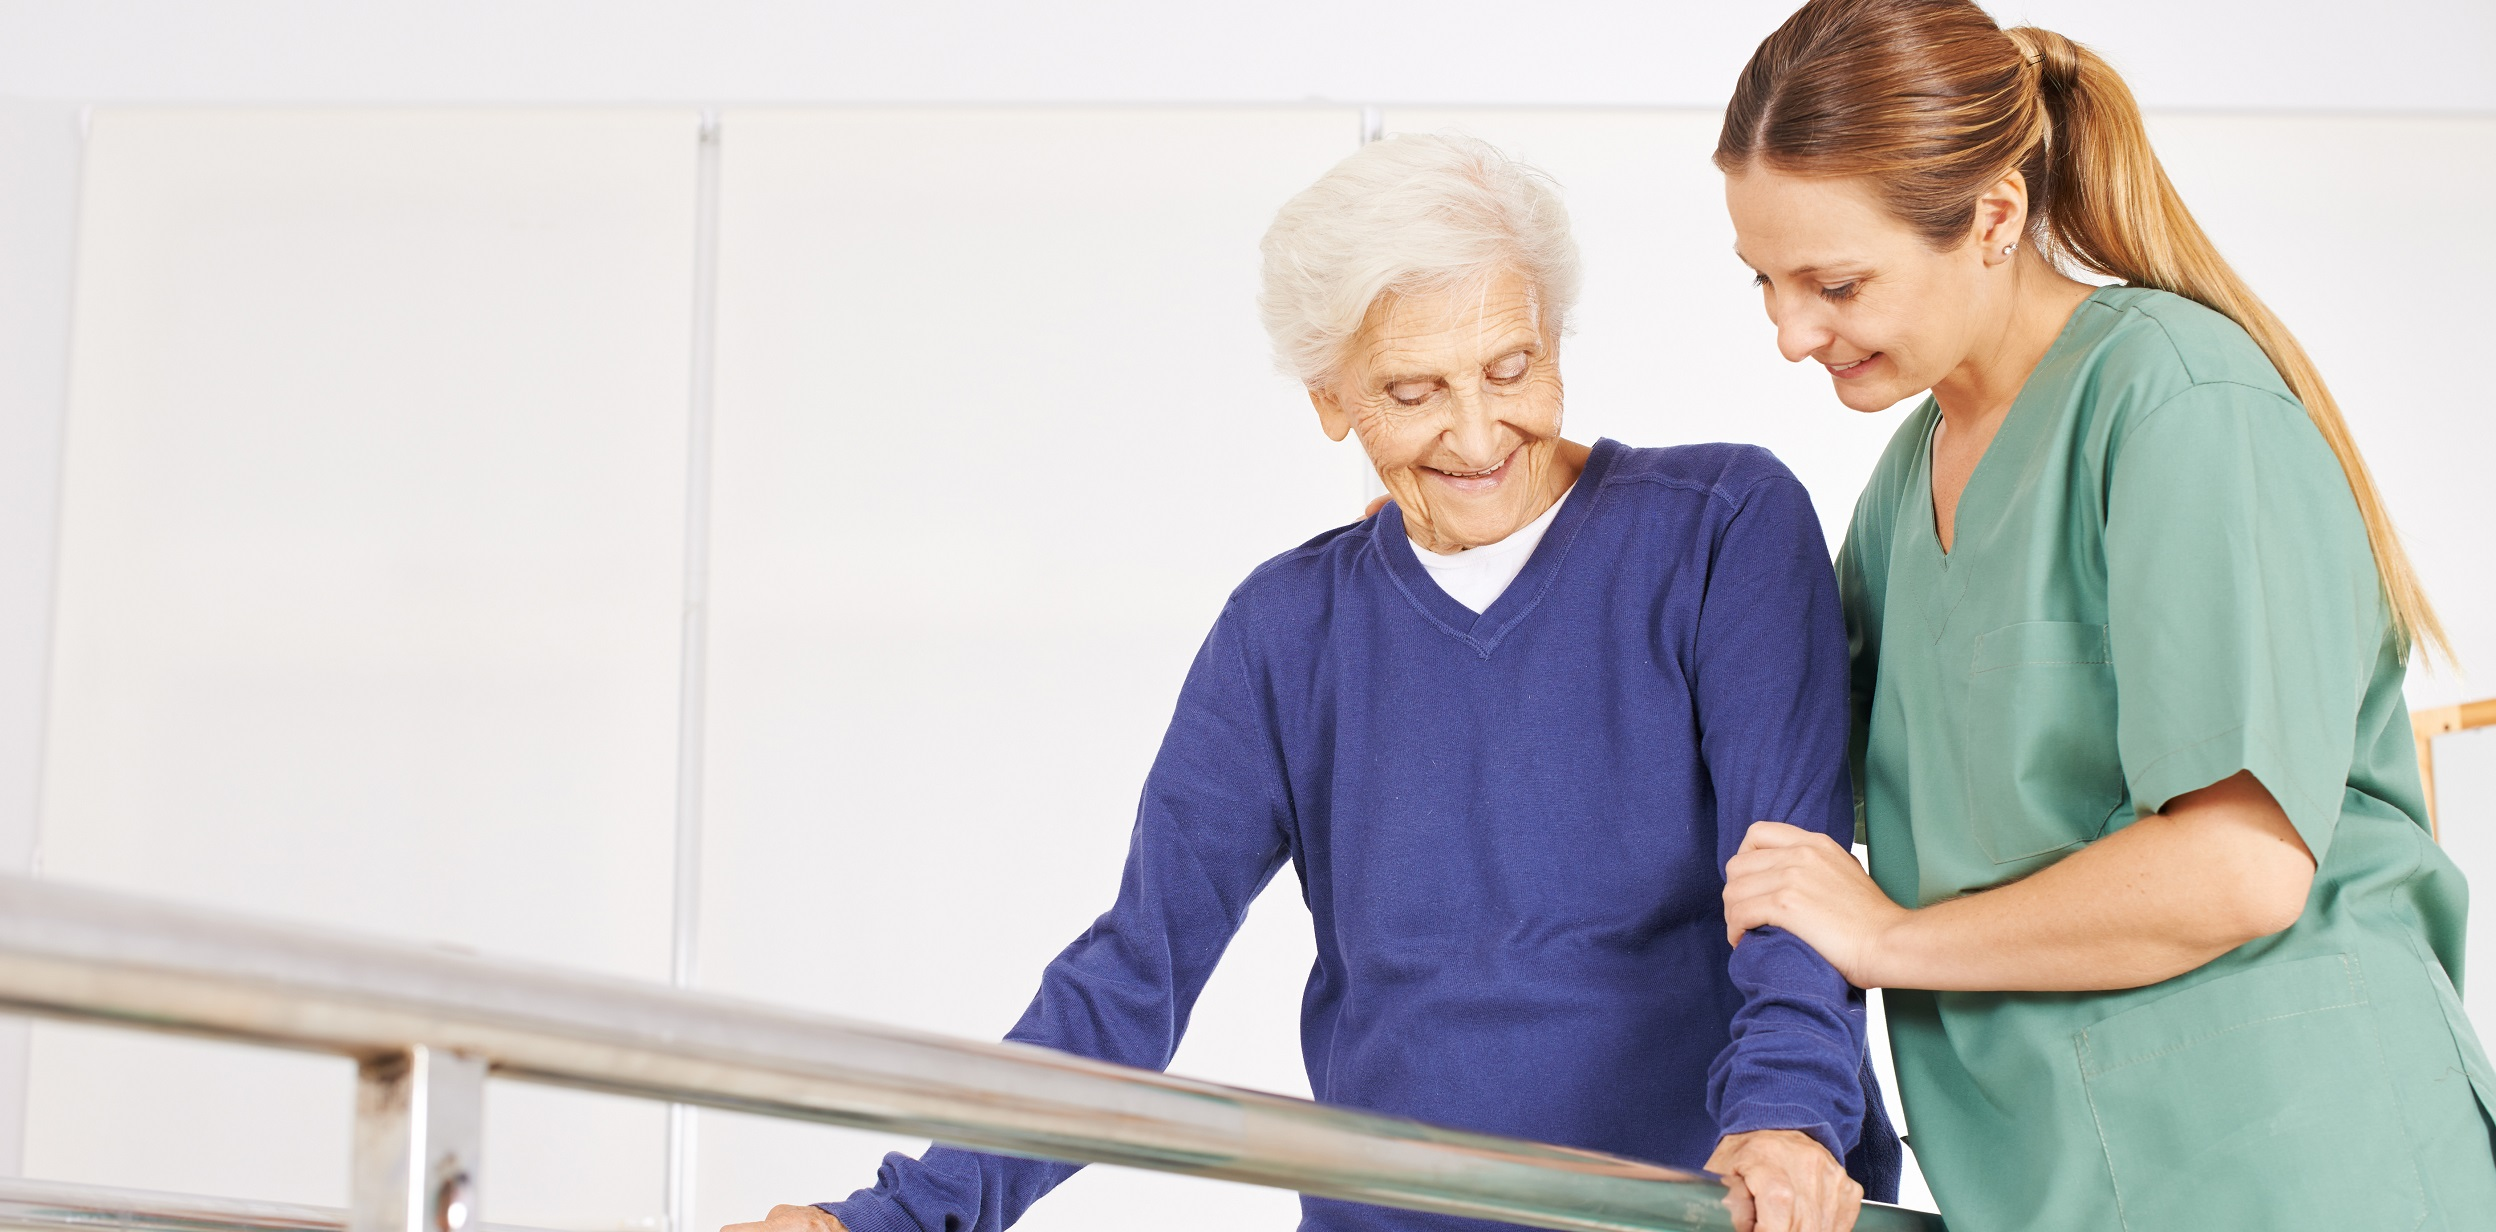 6 Physical Therapy Tips to Help You Age Better